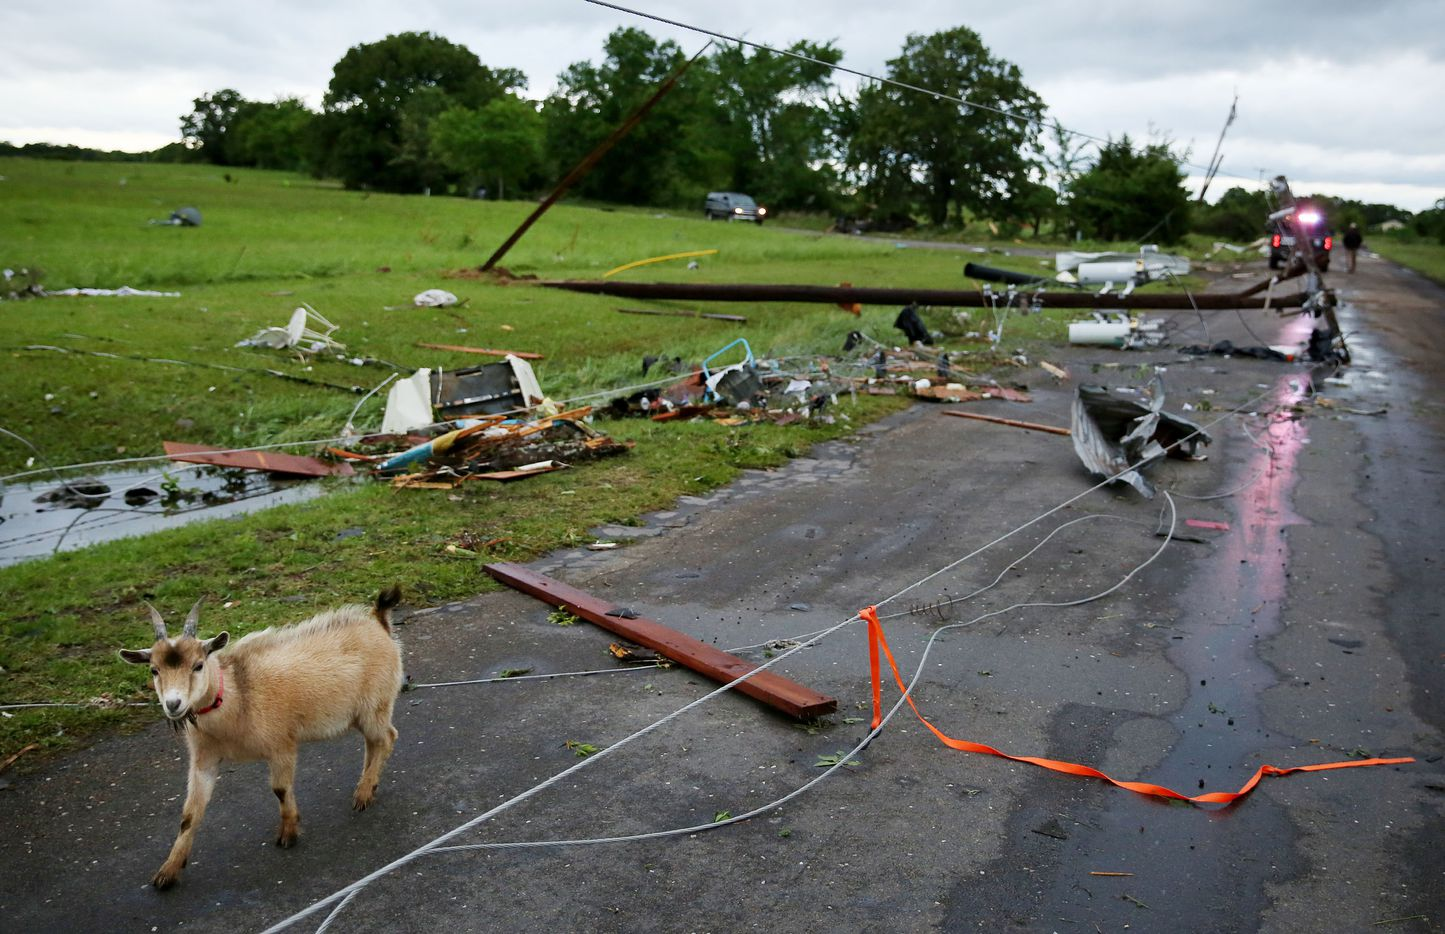 A goat walks along County Road 1910 after a tornado impacted Fruitvale, Texas on Sunday April 30, 2017. Tornadoes whipped through Van Zandt, Henderson and Rains counties Saturday evening with reports of multiple deaths and dozens injured.